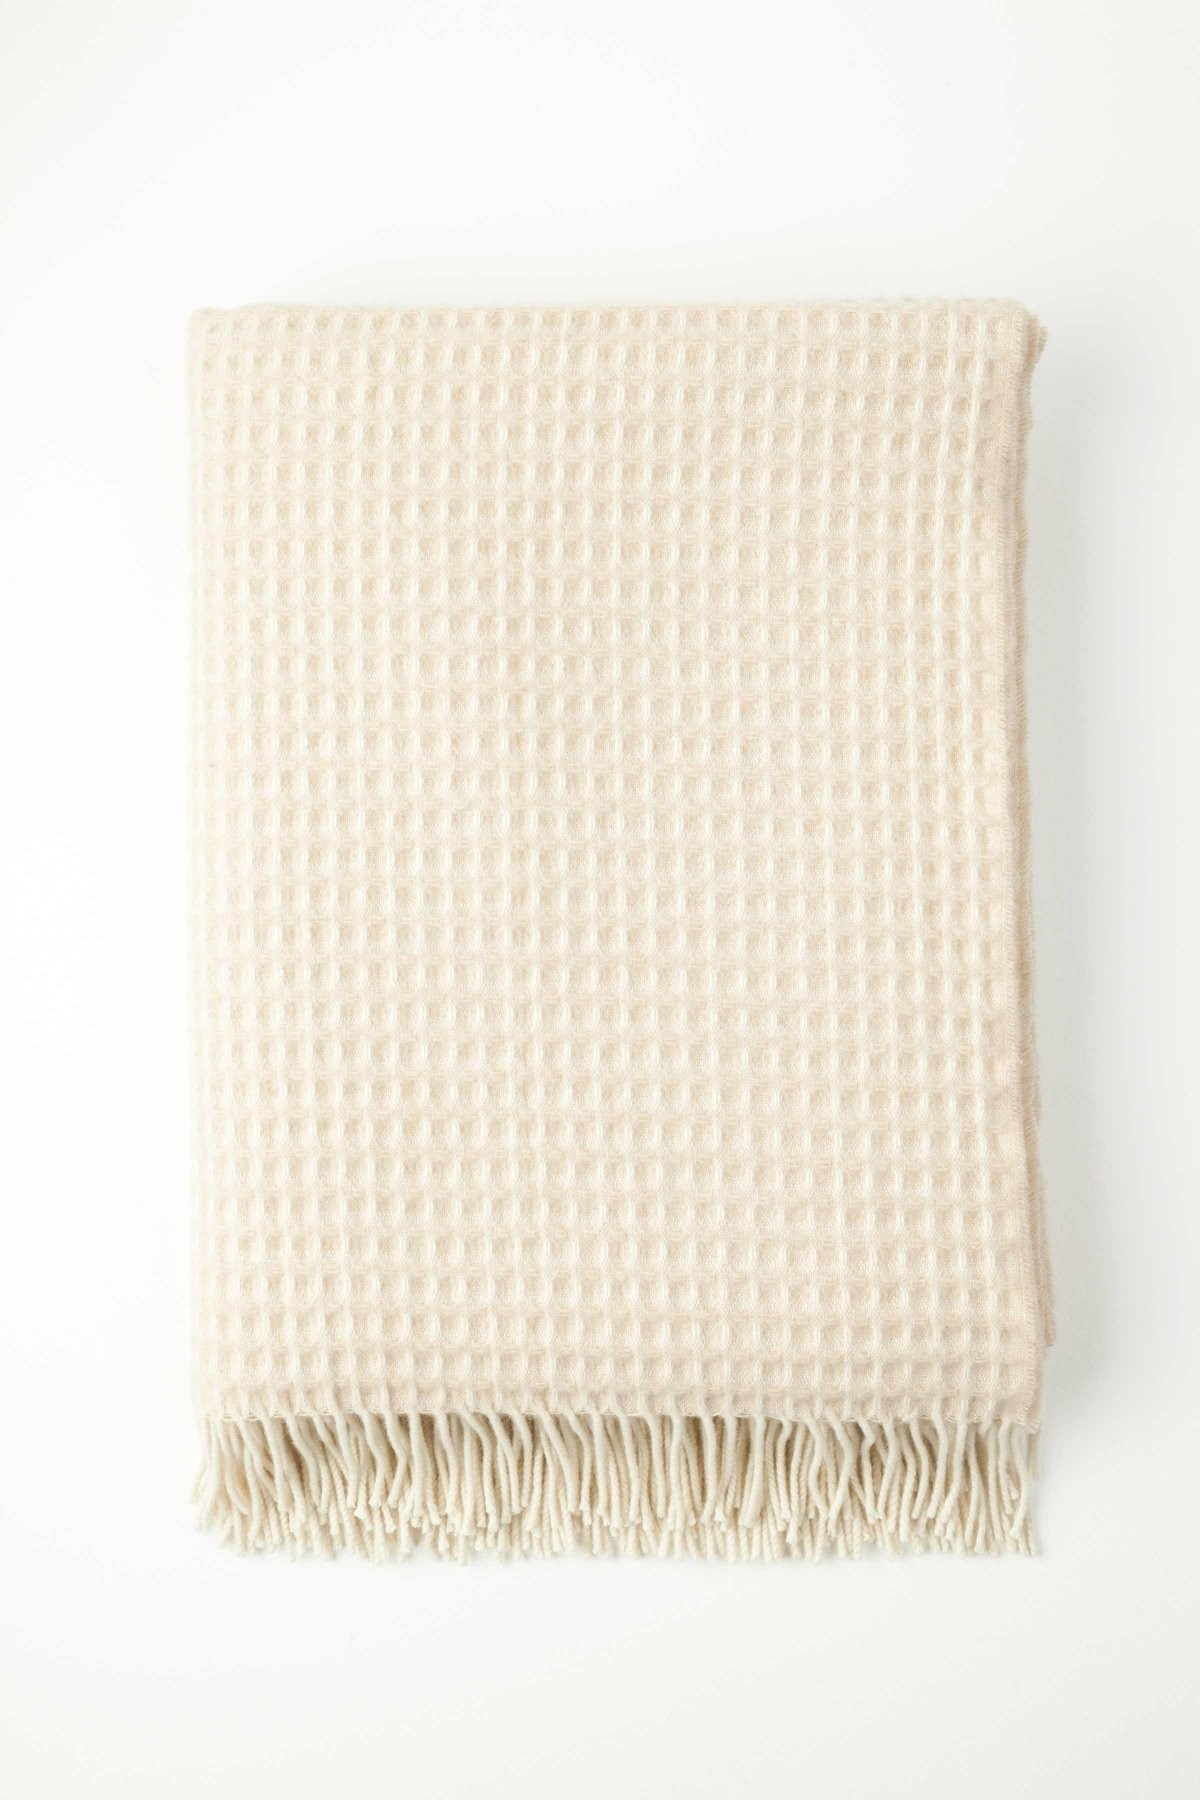 Johnston's of Elgin Cashmere Natural Honeycomb Throw - Natural White